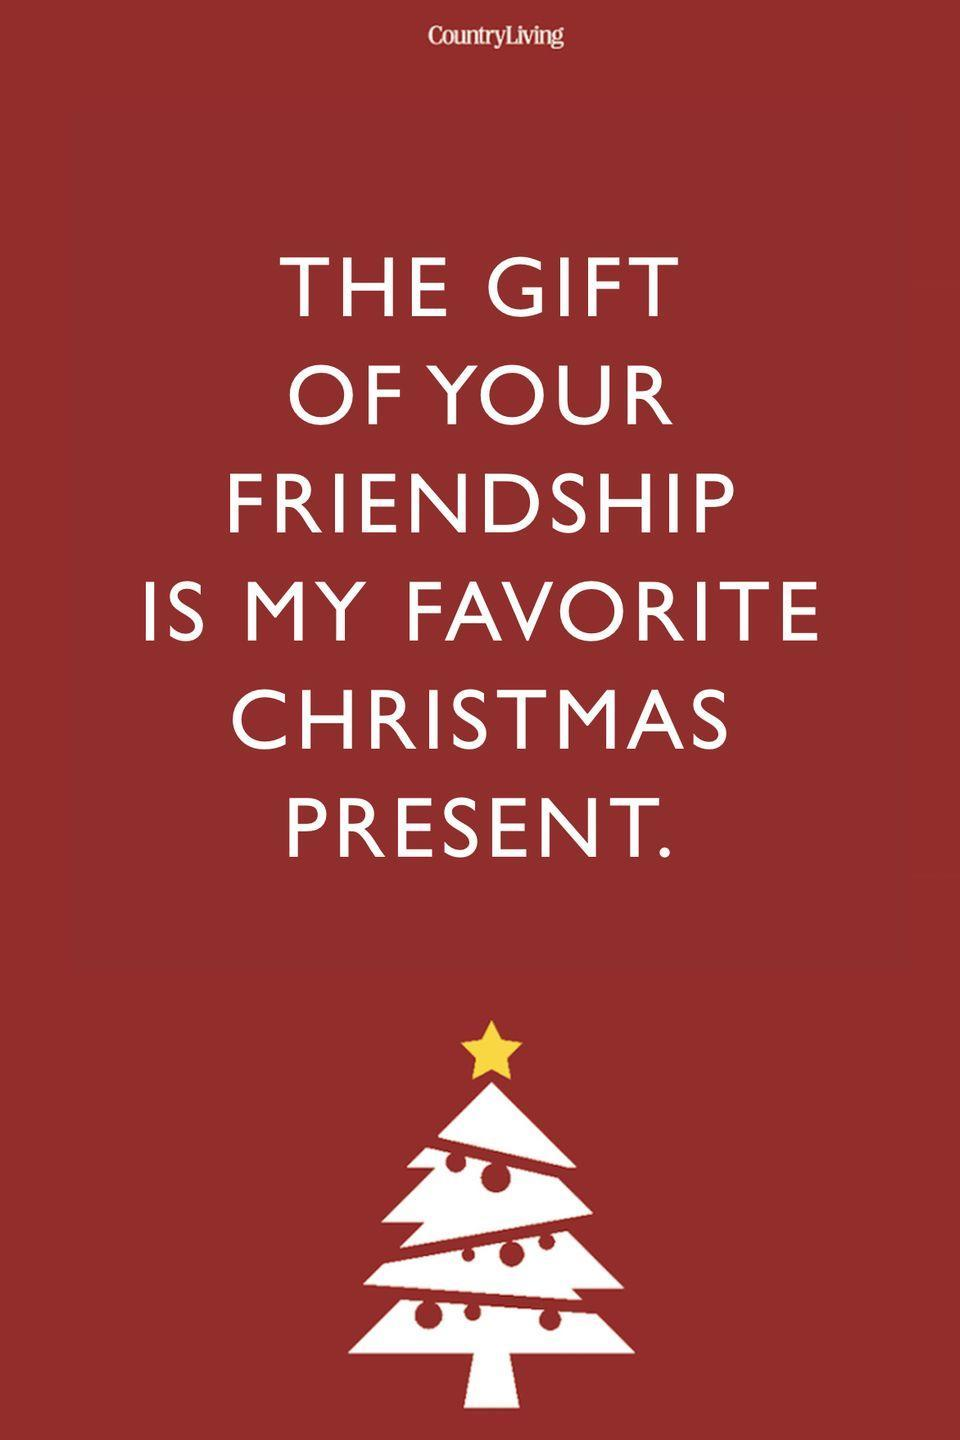 <p>The gift of your friendship is my favorite Christmas present.</p>